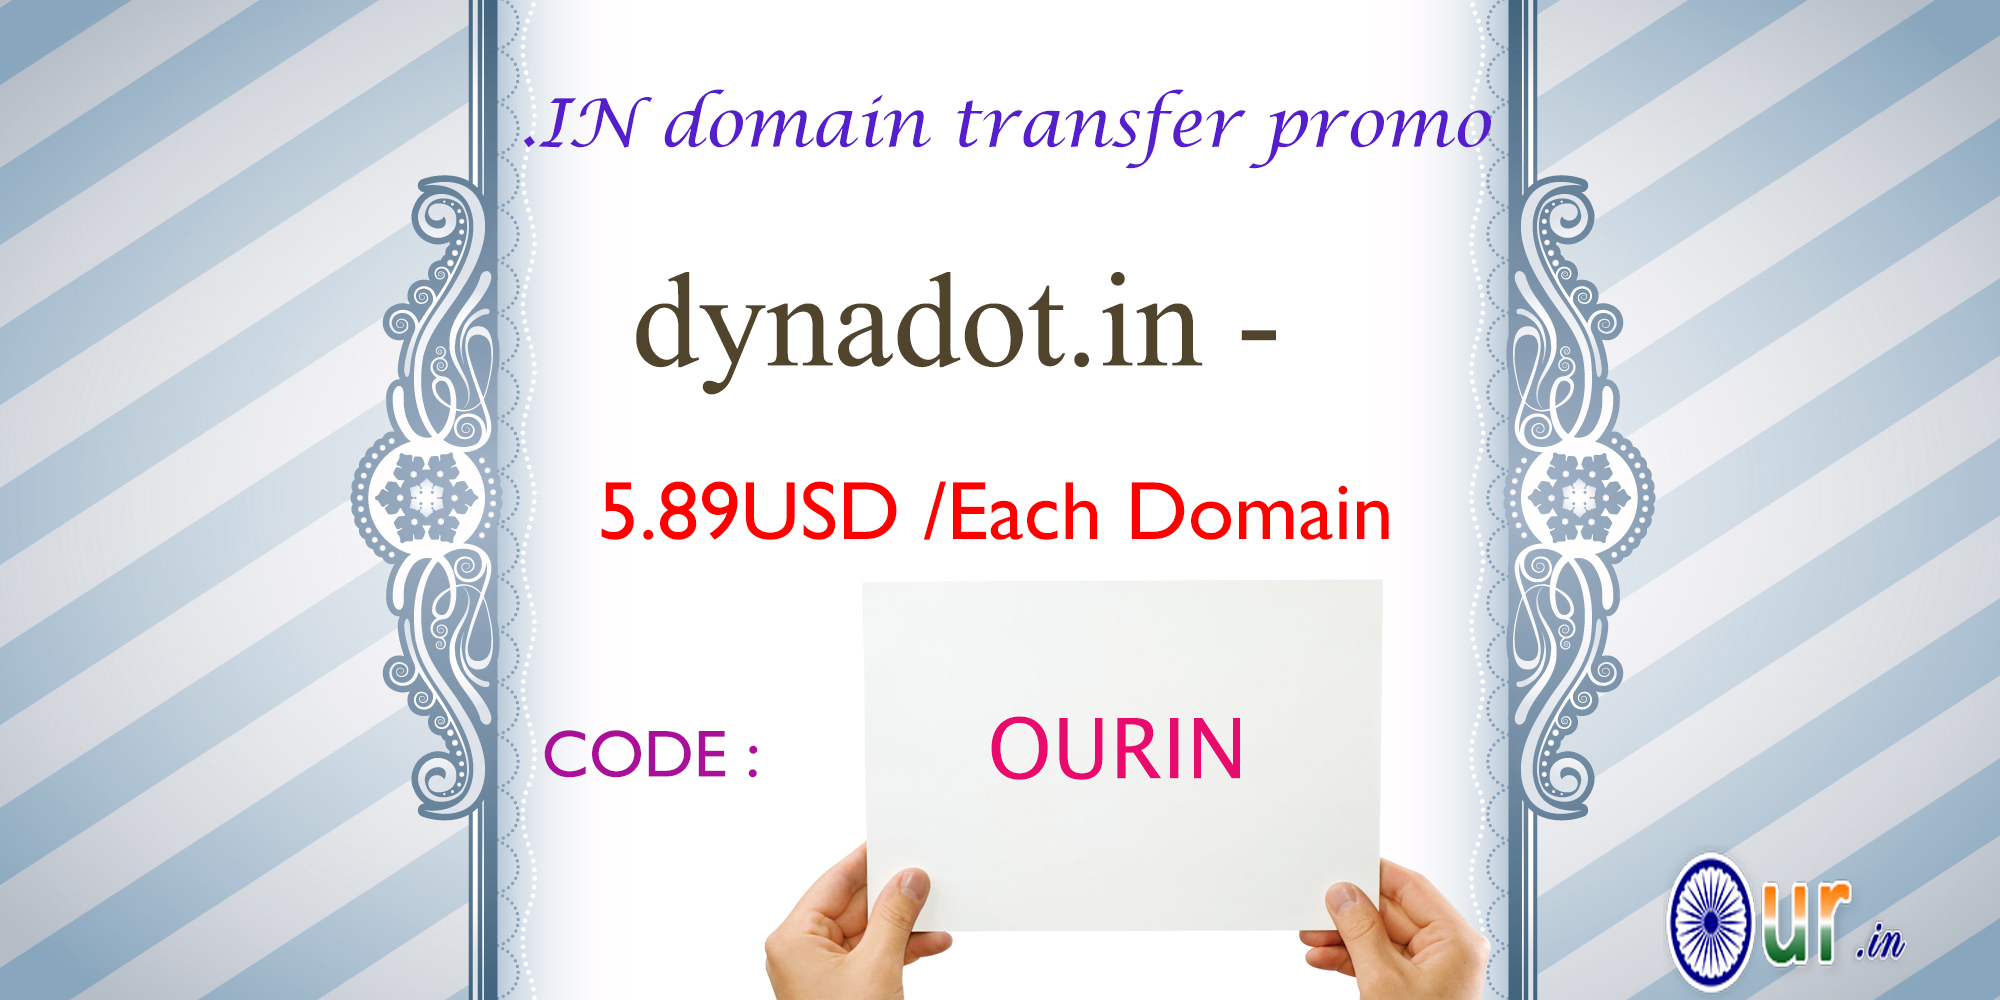 .in domain transfer promo